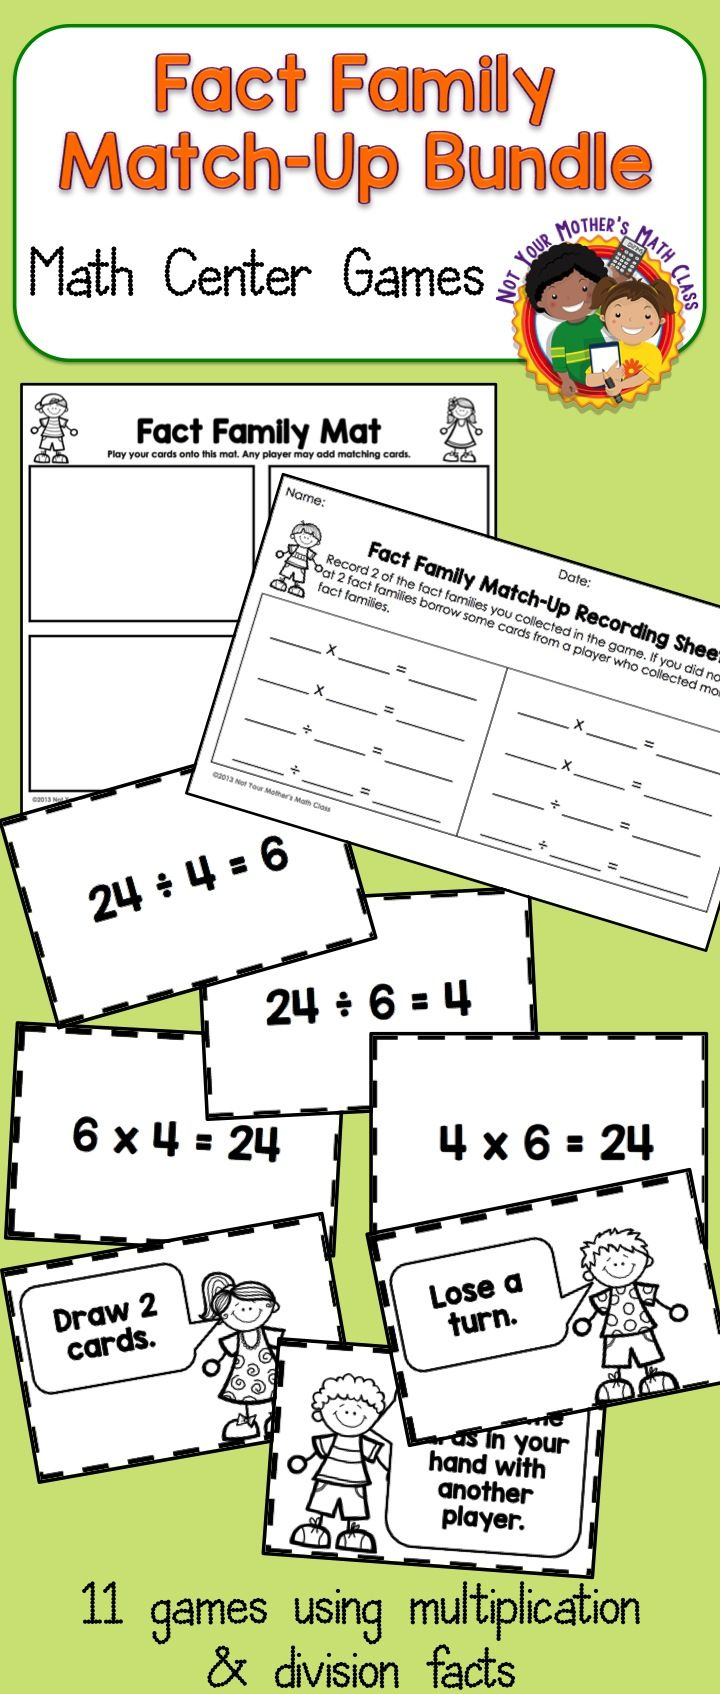 Multiplication Division Fact Family Match Up Bundle Fact